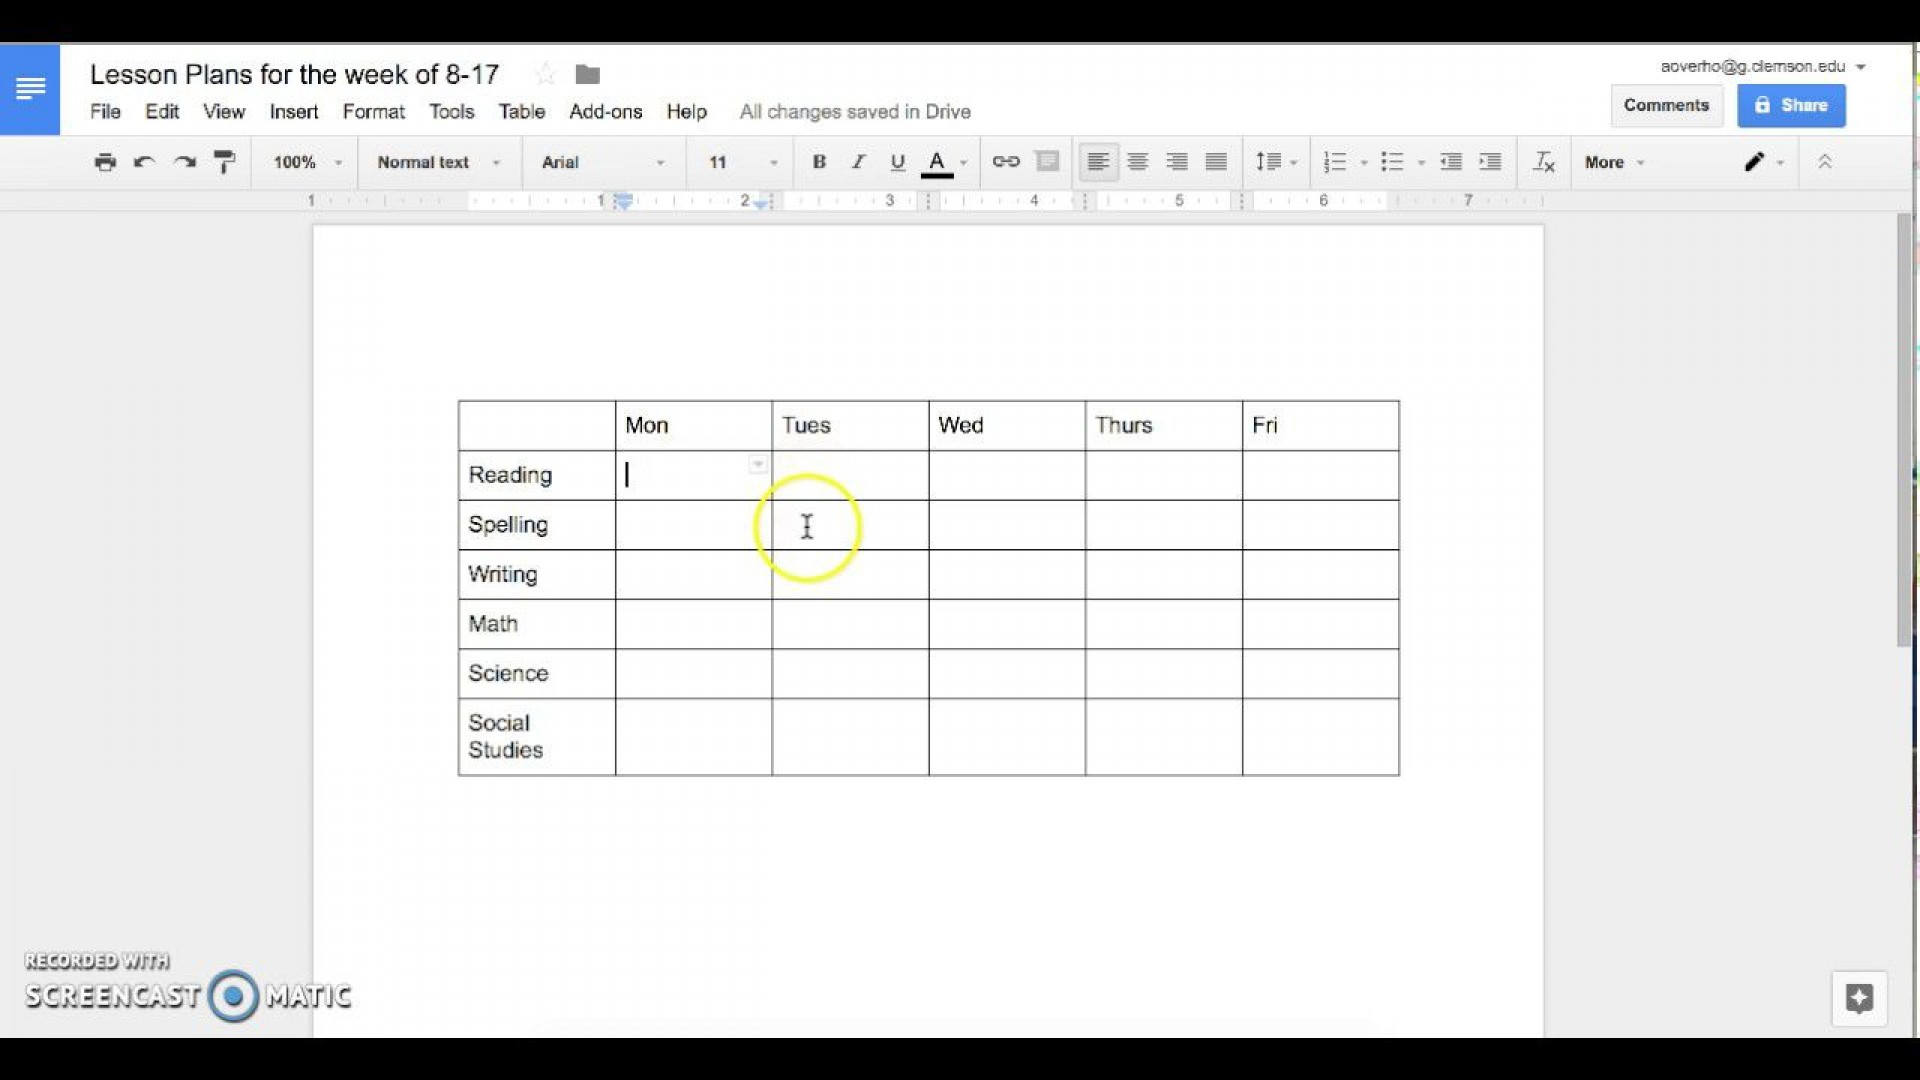 003 Imposing How To Make A Lesson Plan Template In Google Doc Idea  Docs1920